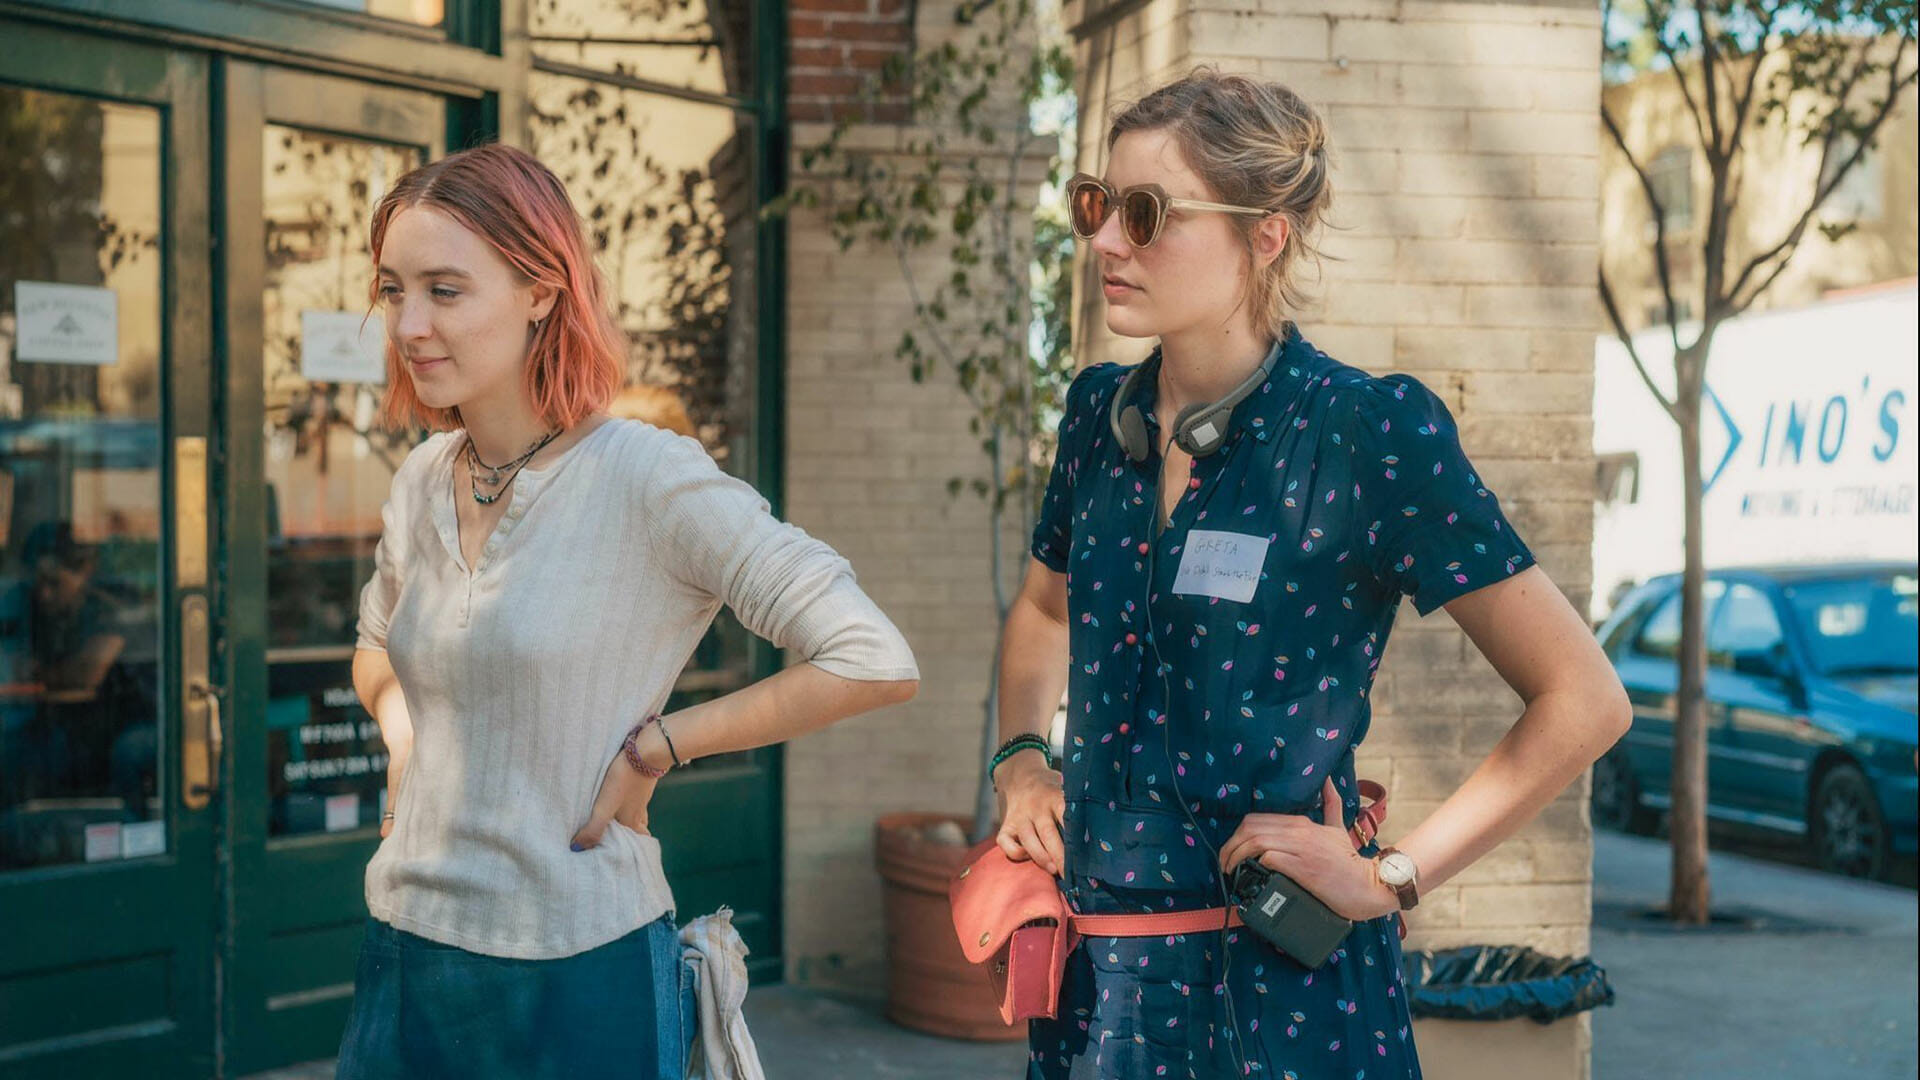 6 Things Greta Gerwig Learned About Writing from Being an Actress